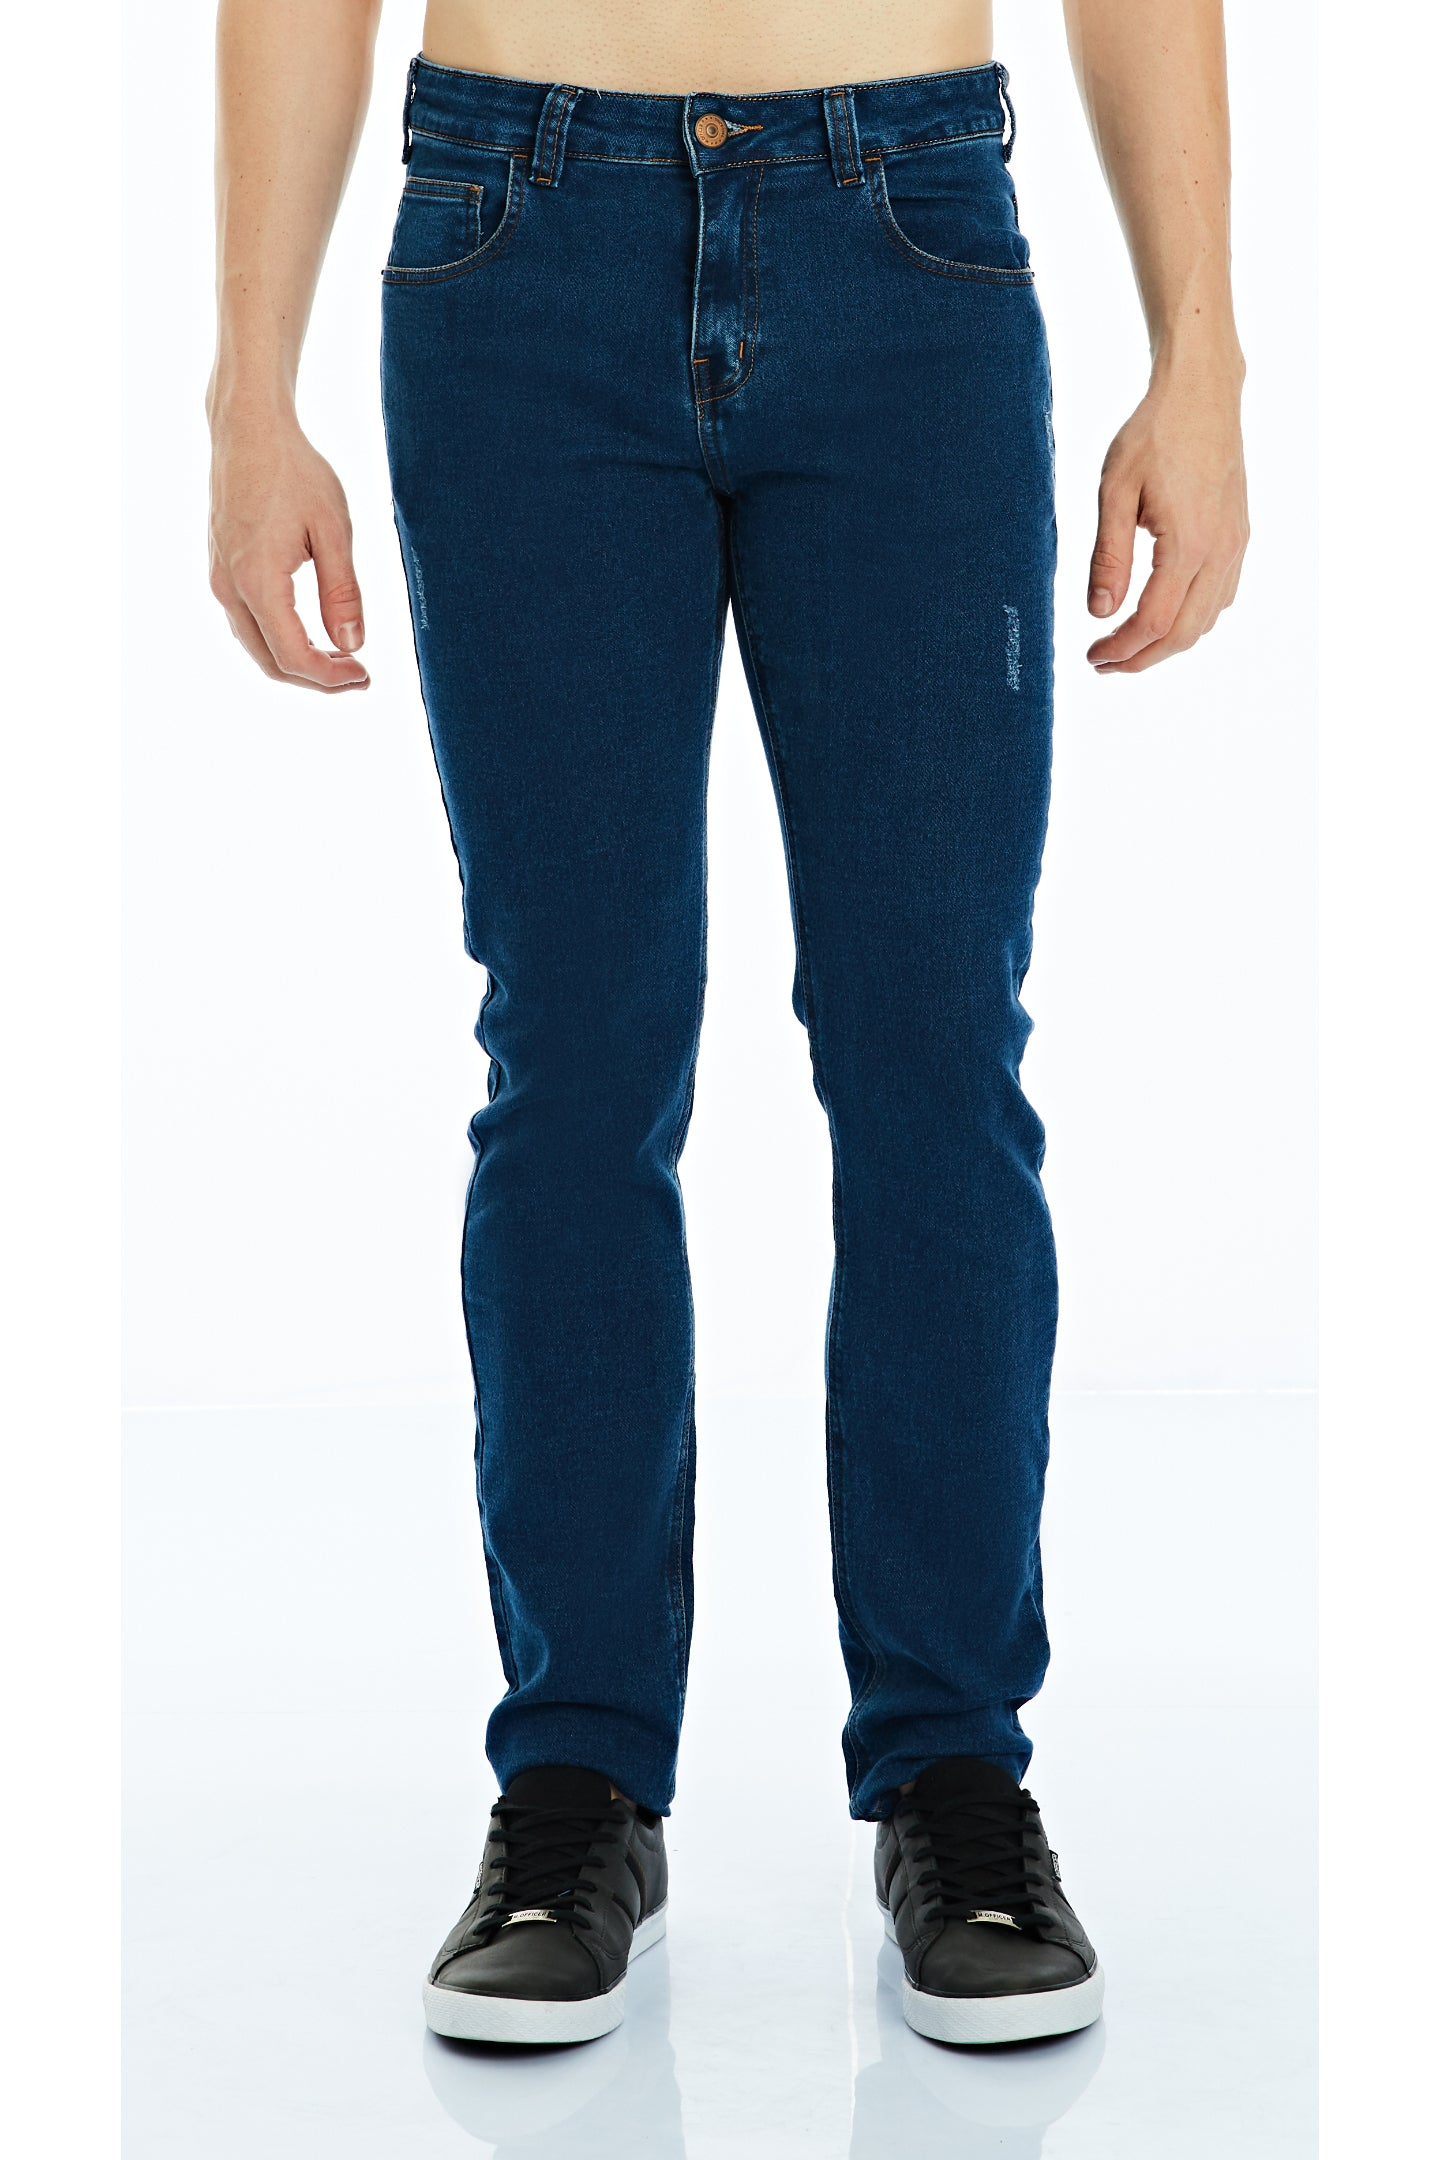 CALÇA JEANS COOL FIT BLUE WASH MOLETOM